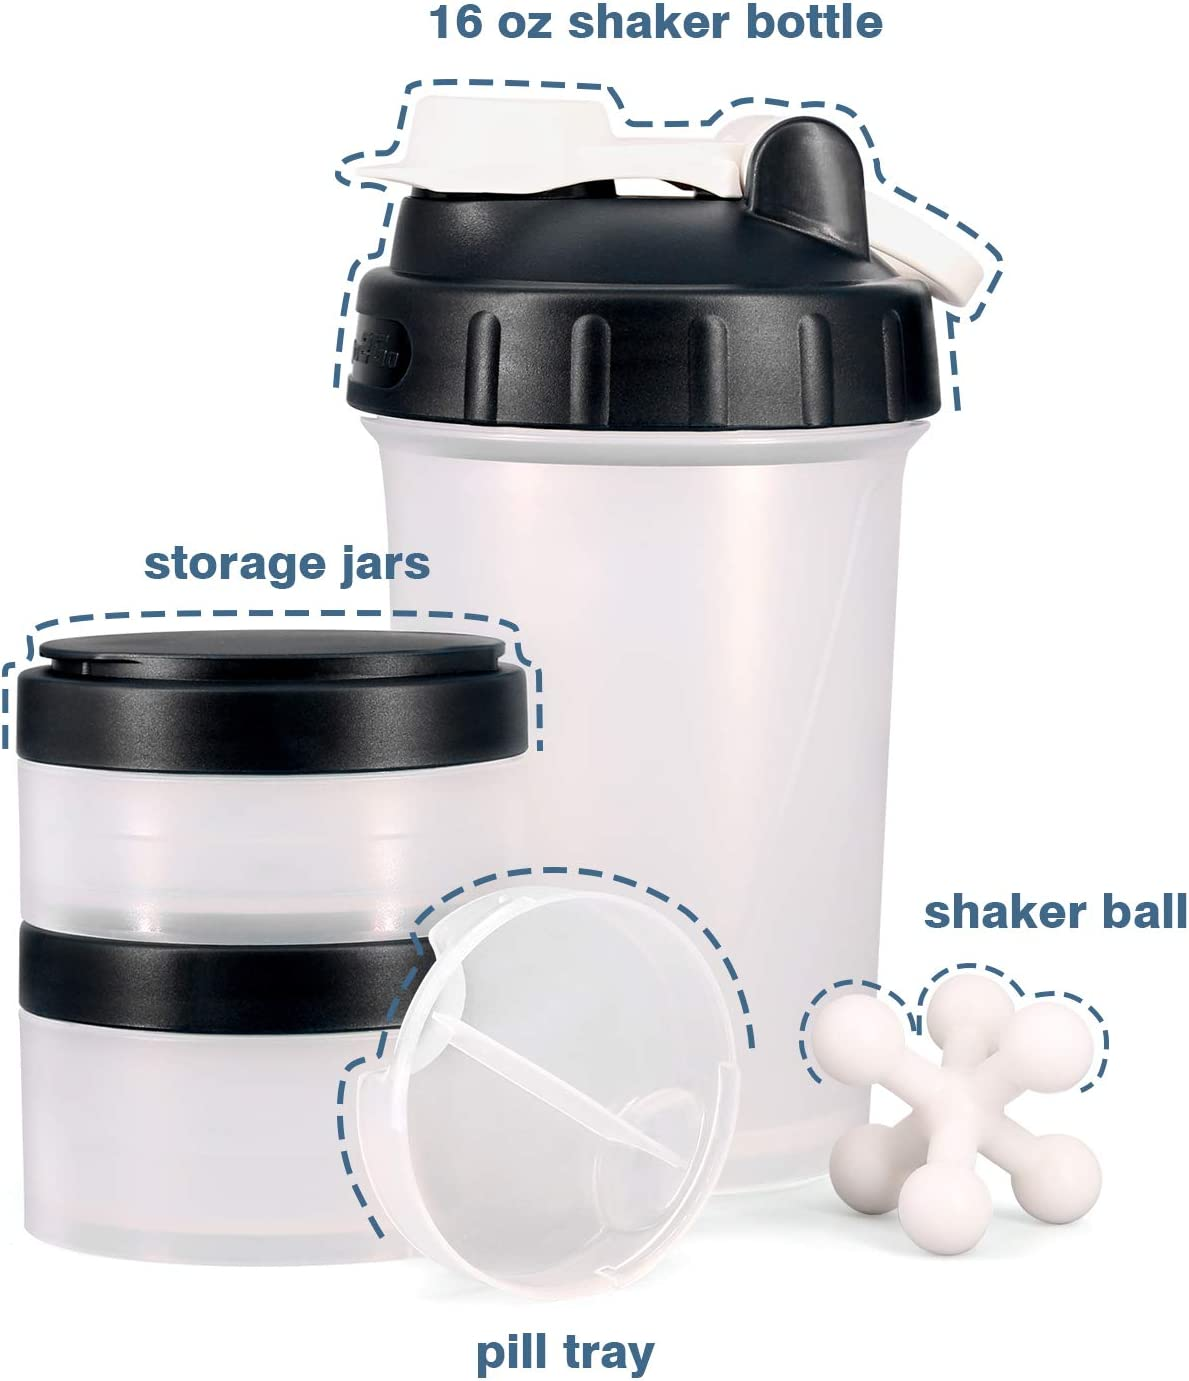 [Promotion] 16 OZ Protein Shaker Bottle with Mixer Ball and 2 Interlocking Storage Jars for Pills, Snacks, Coffee, Tea. 100% BPA Free,Non Toxic and Leak Proof Sports Bottle